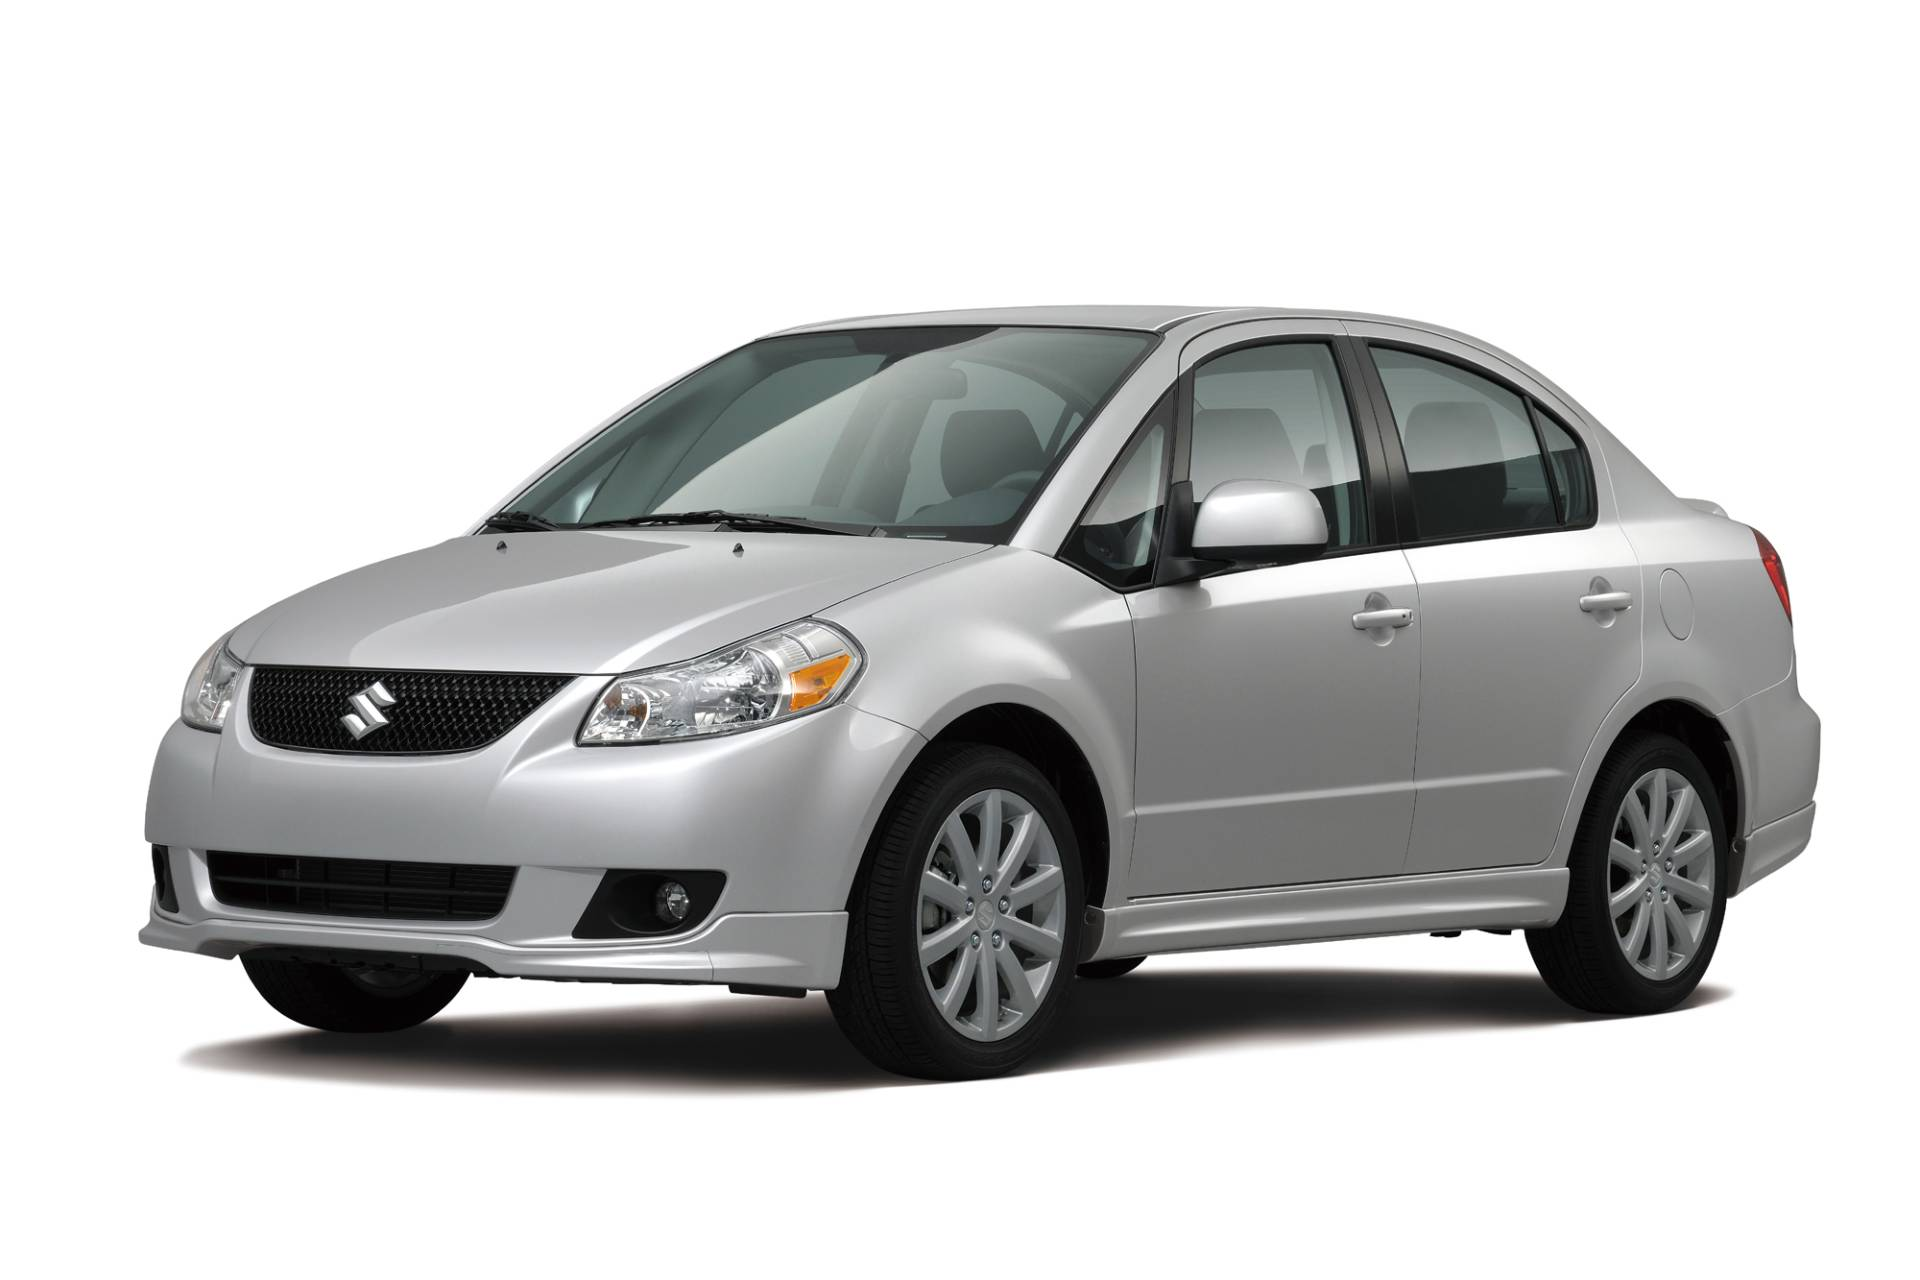 2013 Suzuki Sx4 News And Information